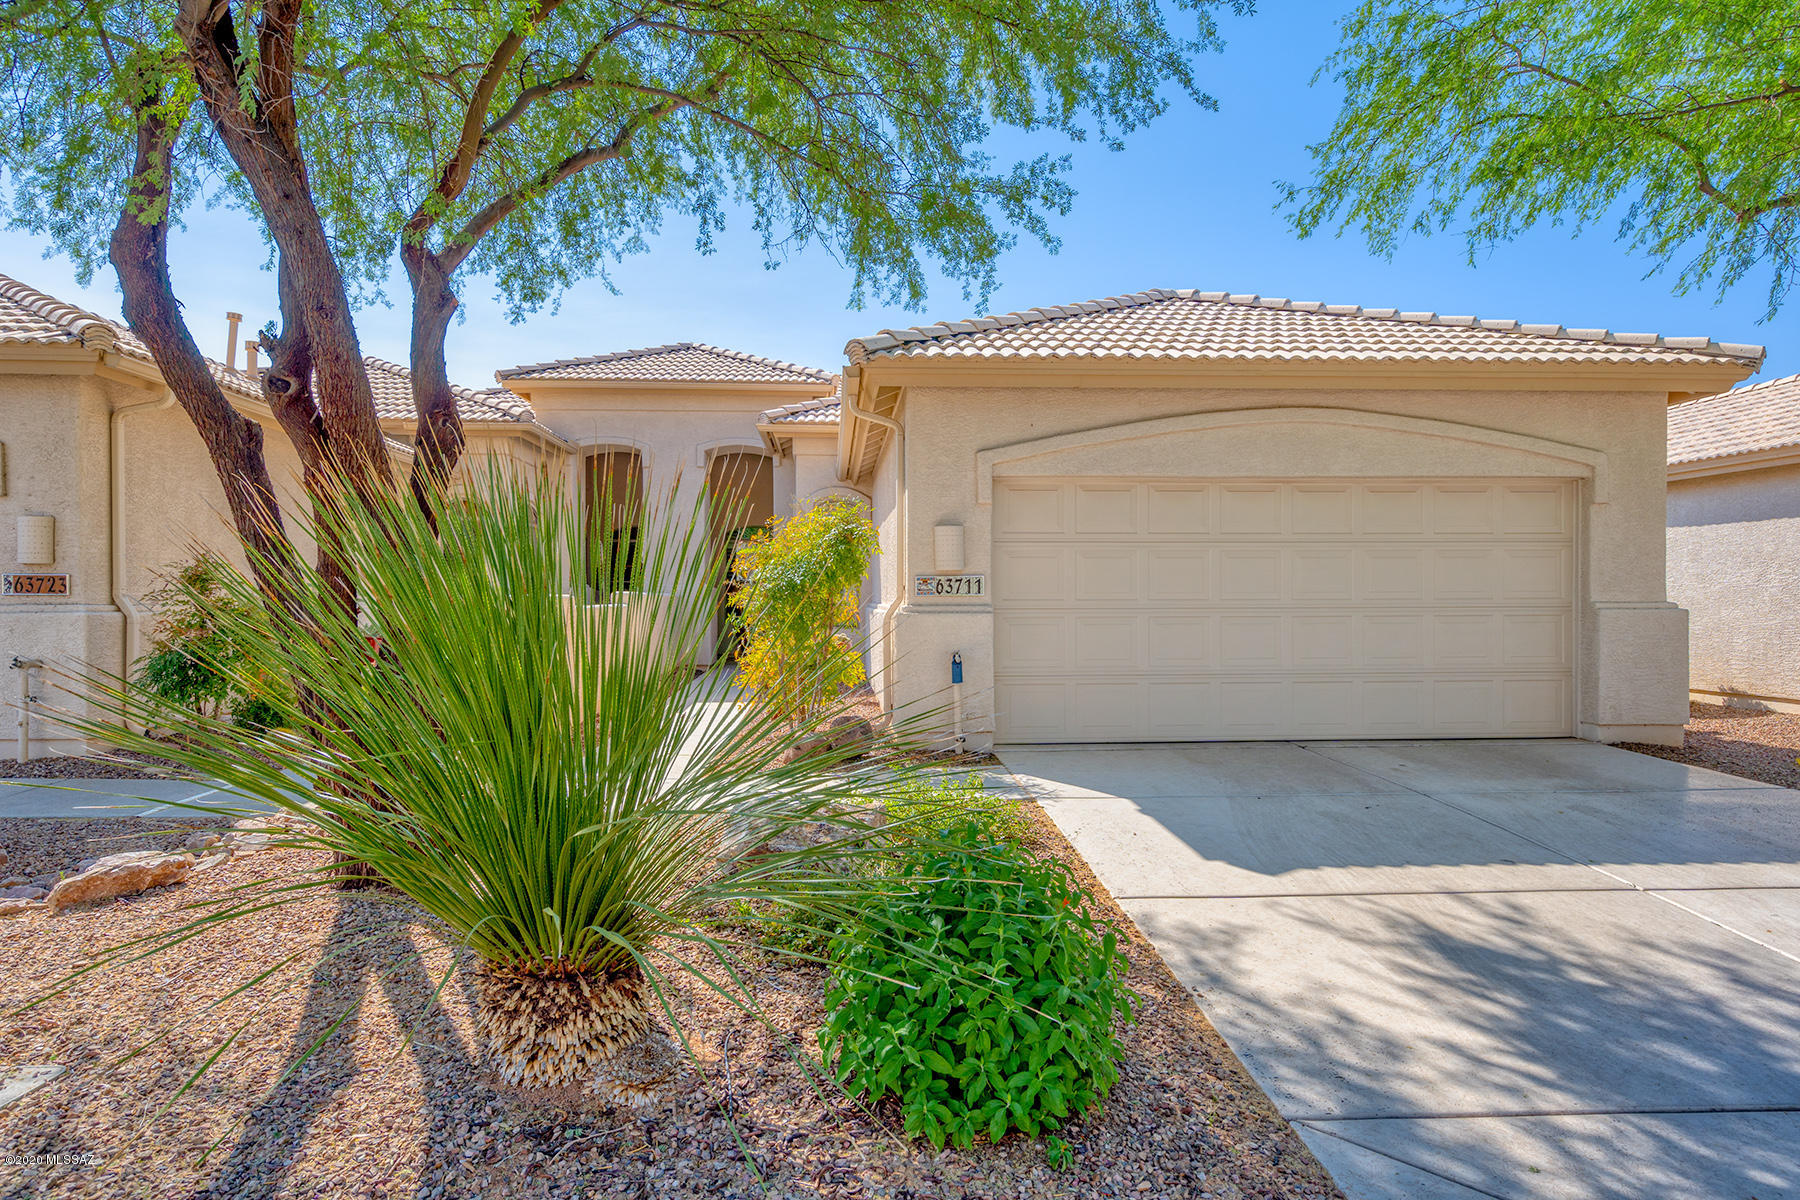 Photo of 63711 E Haven Lane, Tucson, AZ 85739